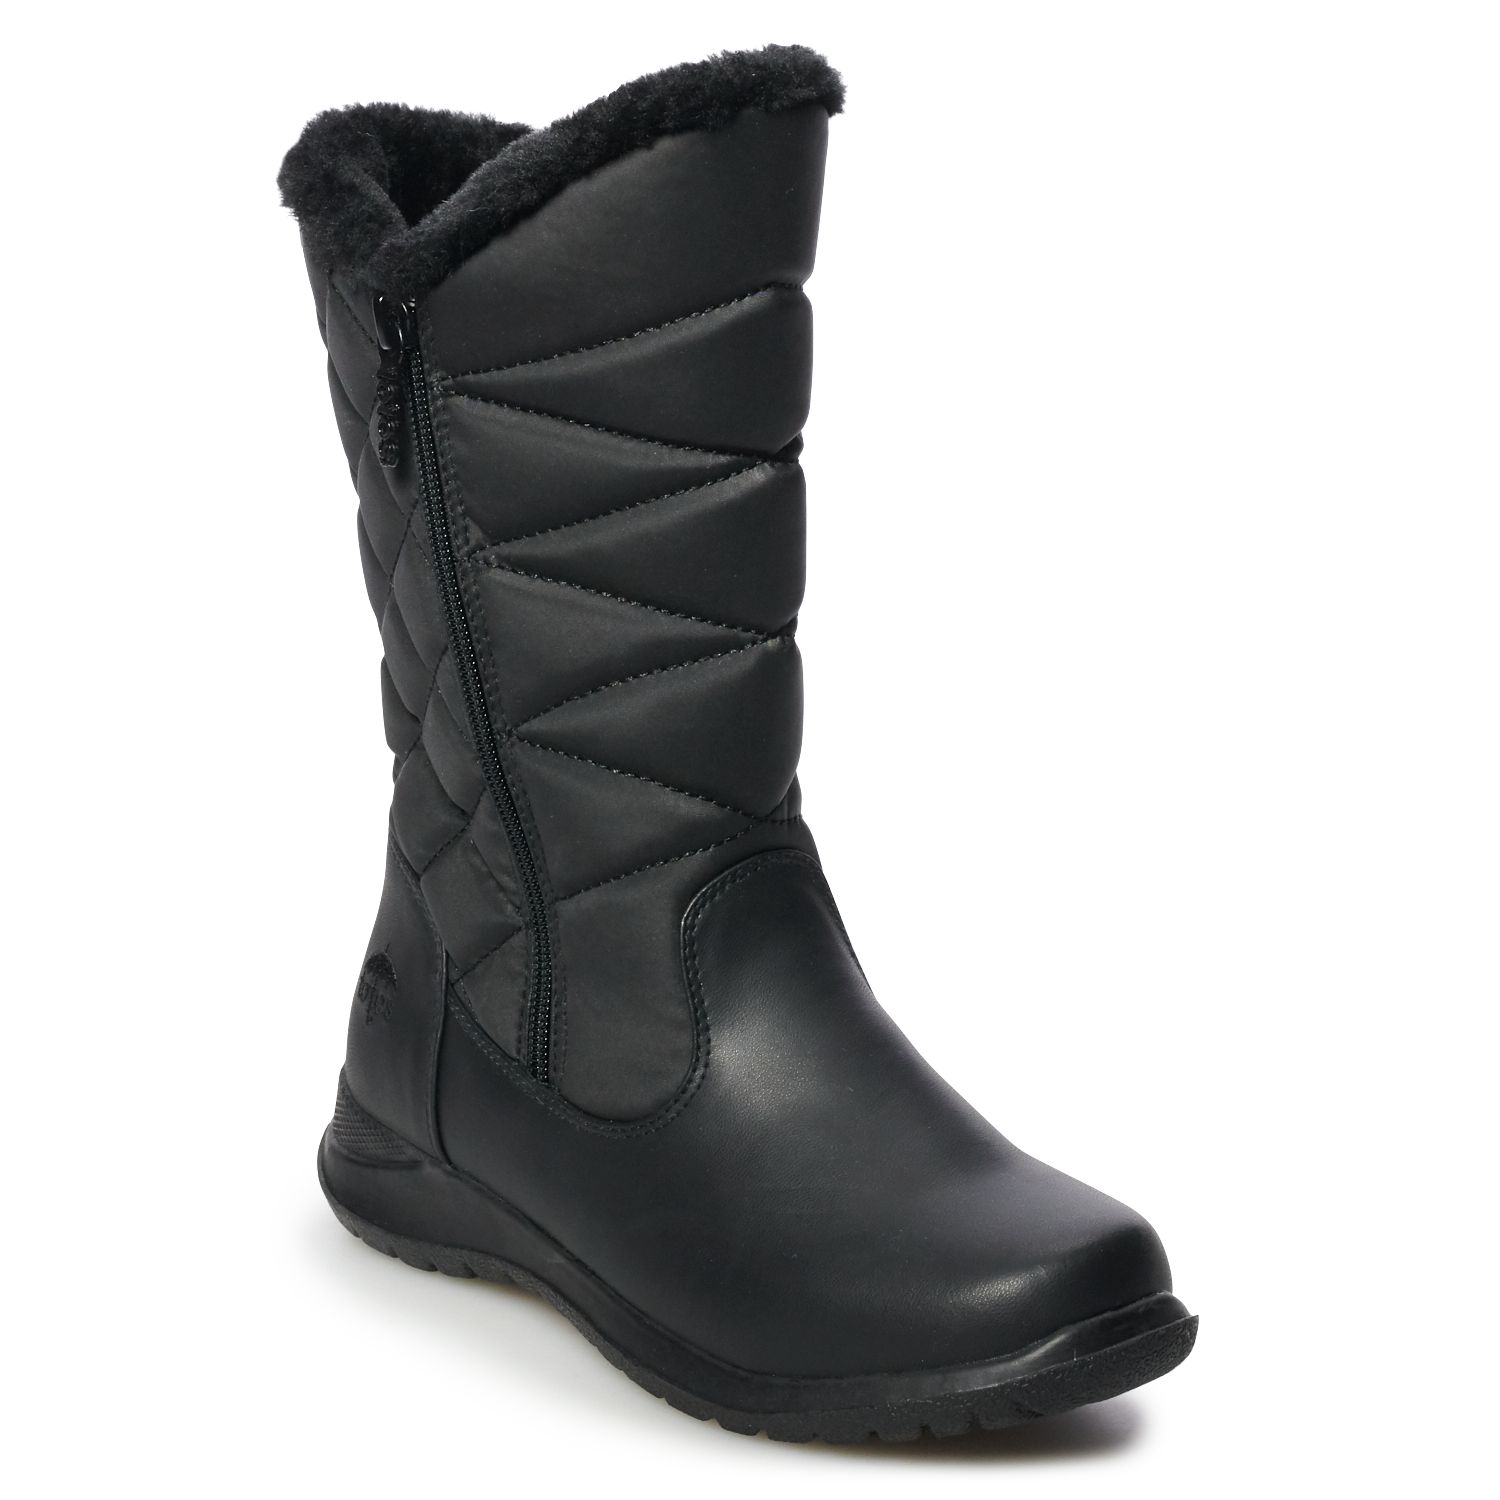 2019 year lifestyle- Boots waterproof womens snow